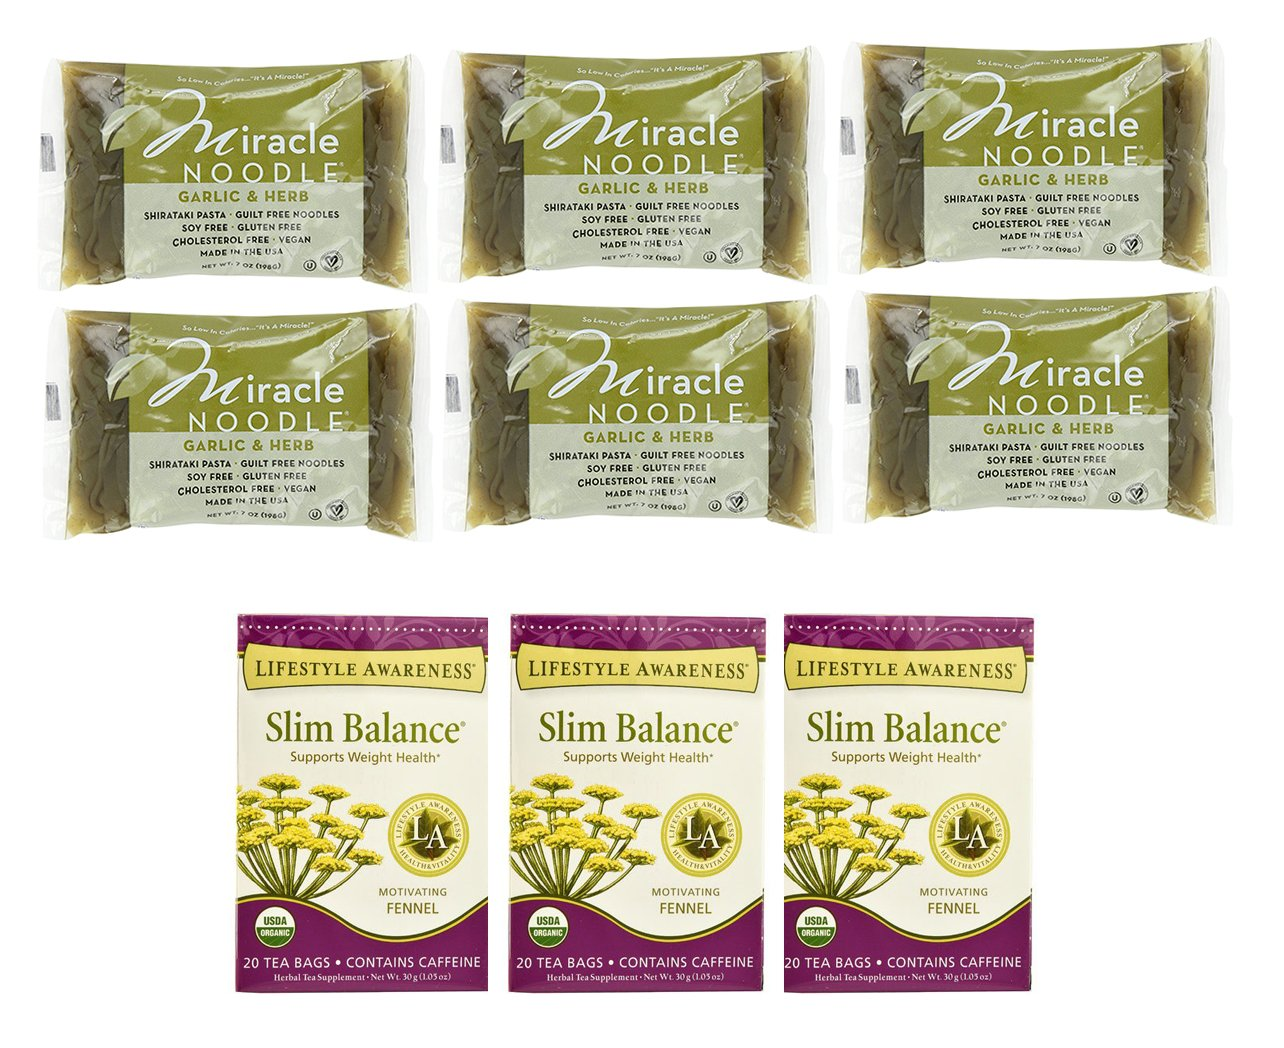 Weight-Loss Package - Miracle Shirataki Noodles + Lifestyle Awareness Slim Balance Tea by Miracle Noodles, Lifestyle Awareness Tea